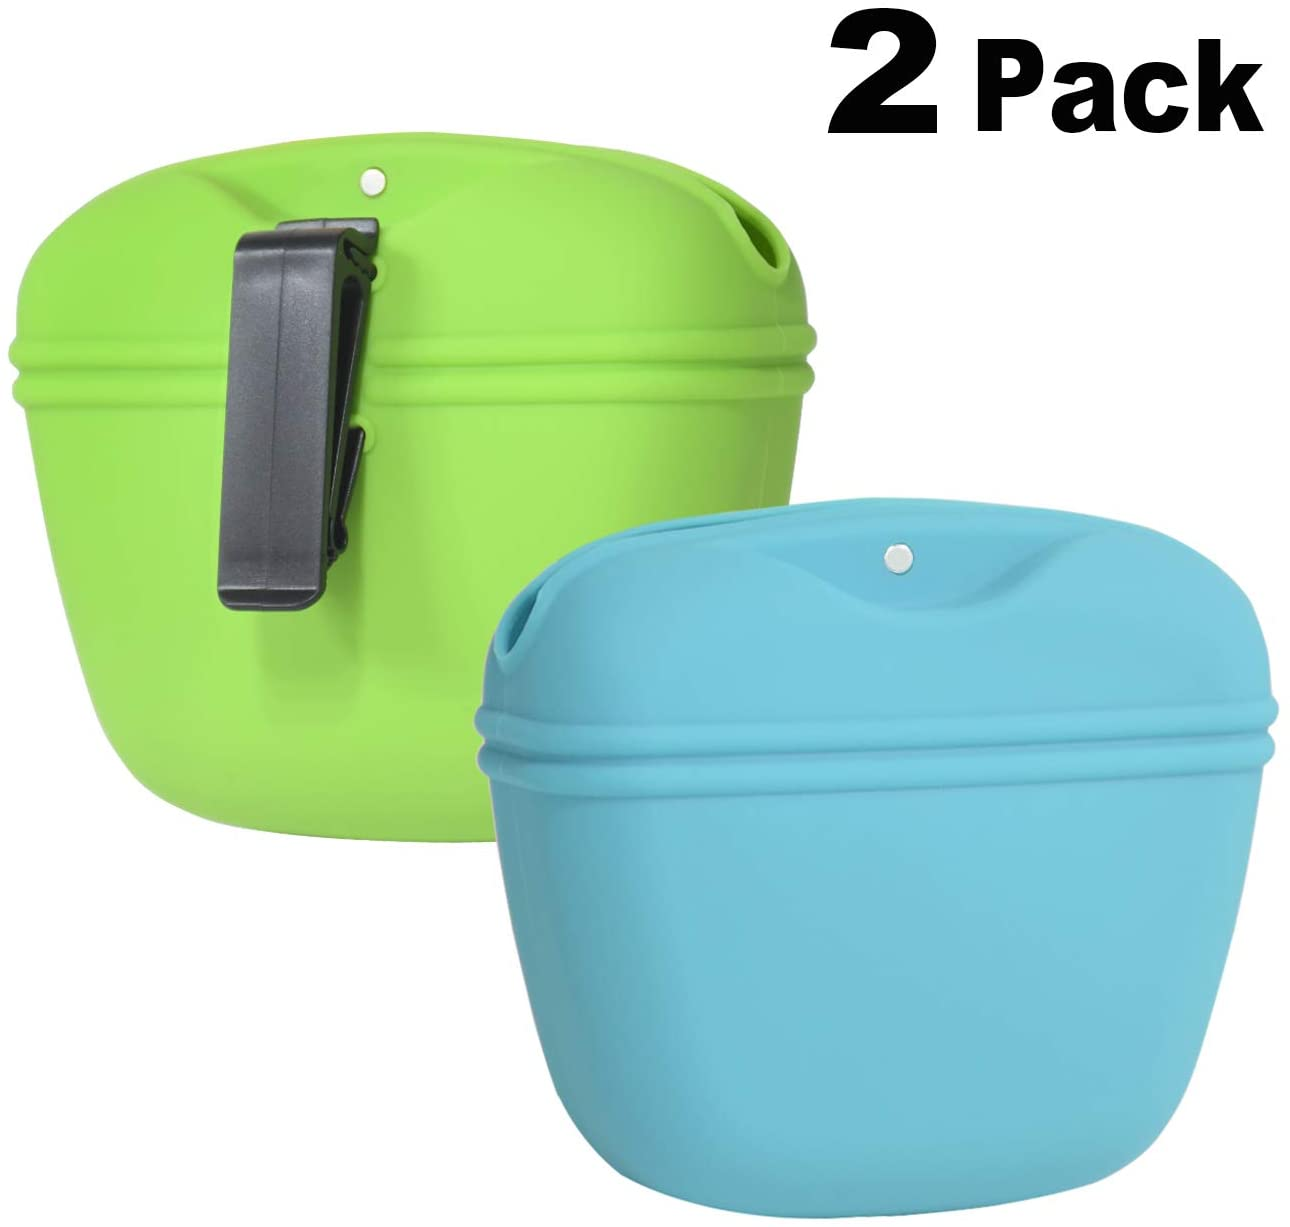 Changeary Silicone Dog Treat Pouch(2pcs) - Portable Small Training Bag with Magnetic Closure and Waist Clip (Can Hold Kinds of Wet Food)- BPA Free